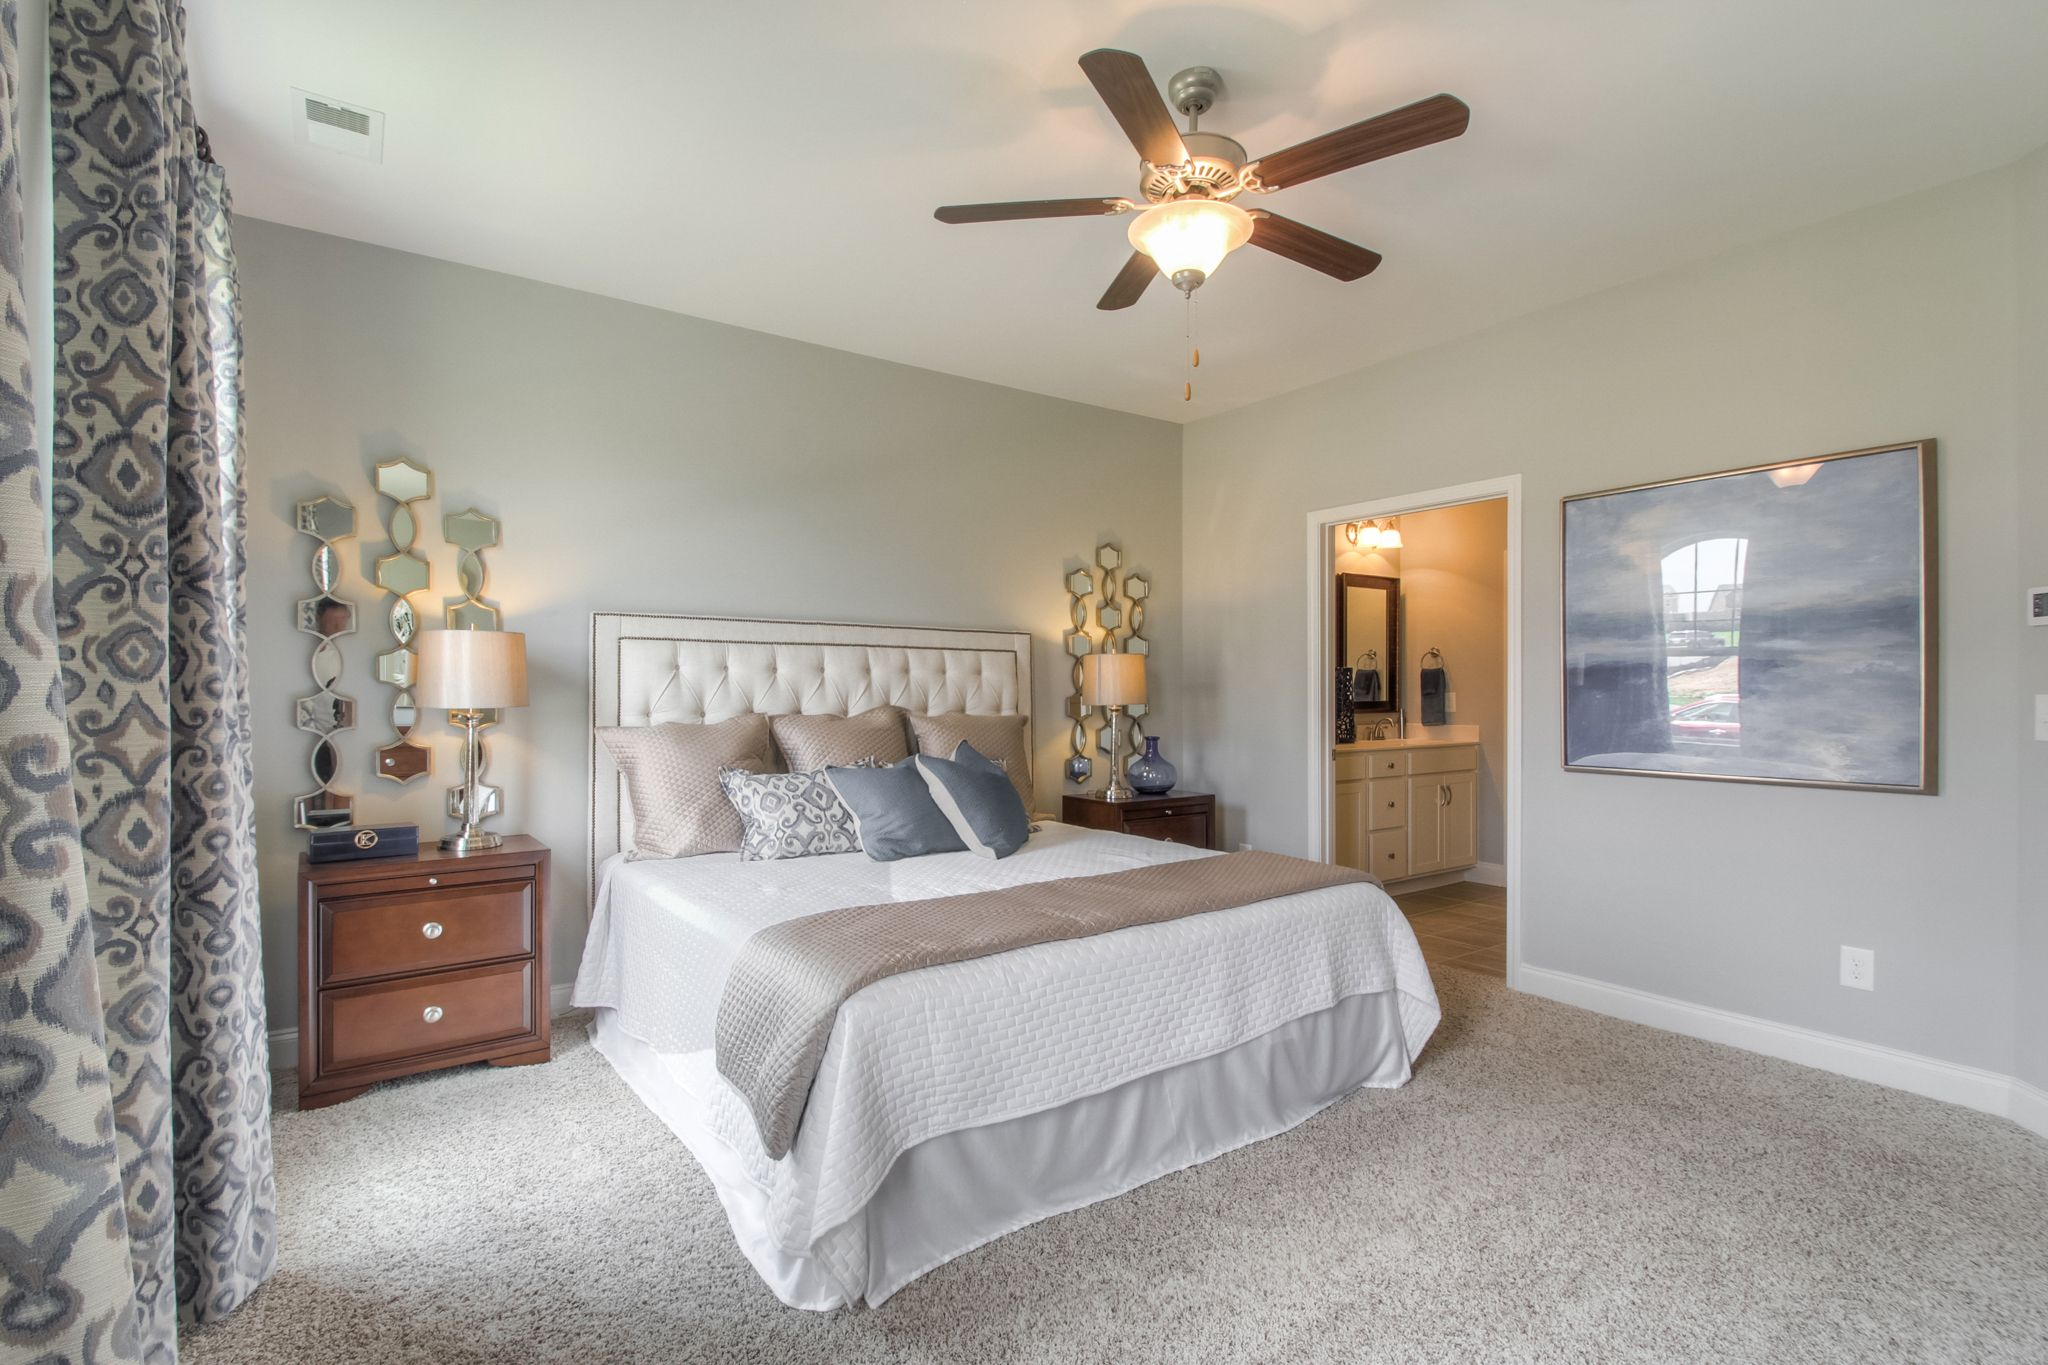 Bedroom featured in The Raleigh Courtyard Cottage By Goodall Homes in Chattanooga, GA